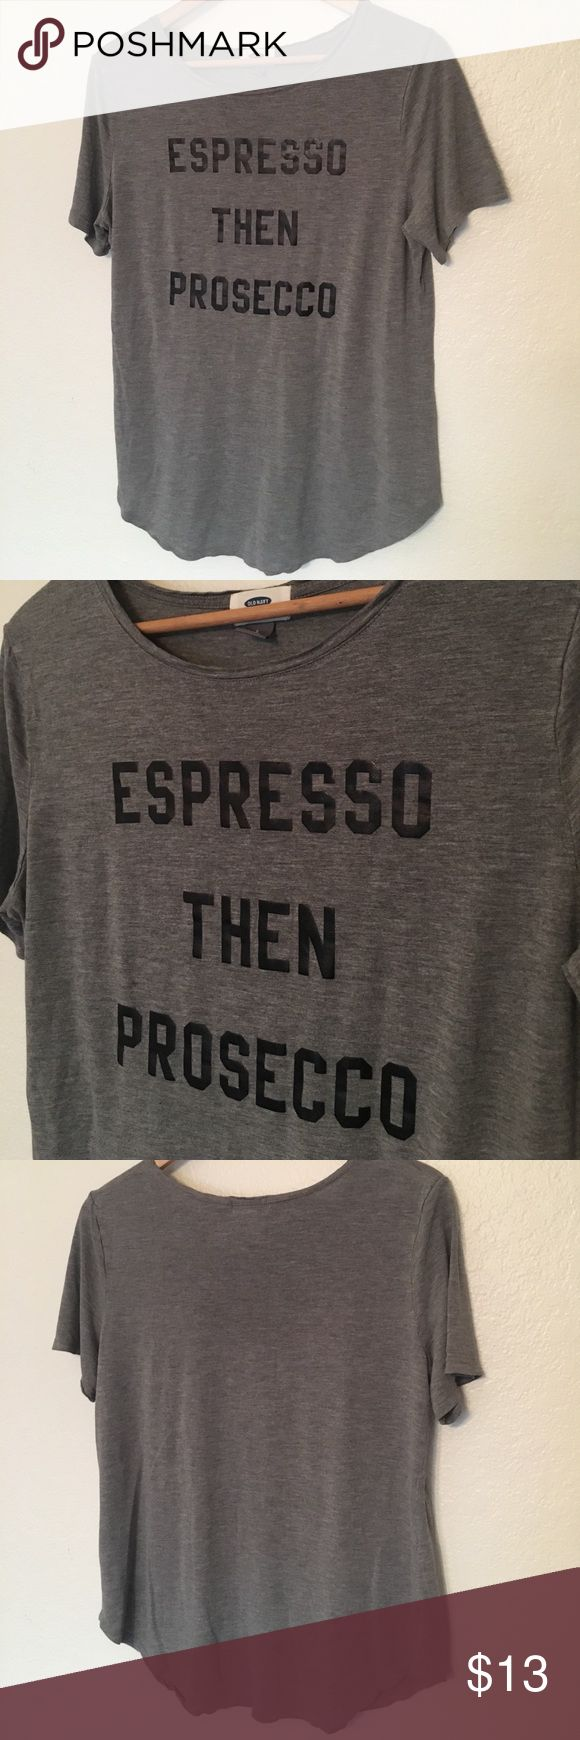 Espresso then Prosecco Tee This tee is a grey color with black lettering that says, Espresso then Prosecco! 🙌🏻 Only worn a couple of times. Size L. Save on ✈️SHIPPING✈️and 🎁BUNDLE! I even give a discount on 3 or more regularly priced item bundles. I always accept reasonable offers with the offer button! 🚫❌Lowball offers please! Old Navy Tops